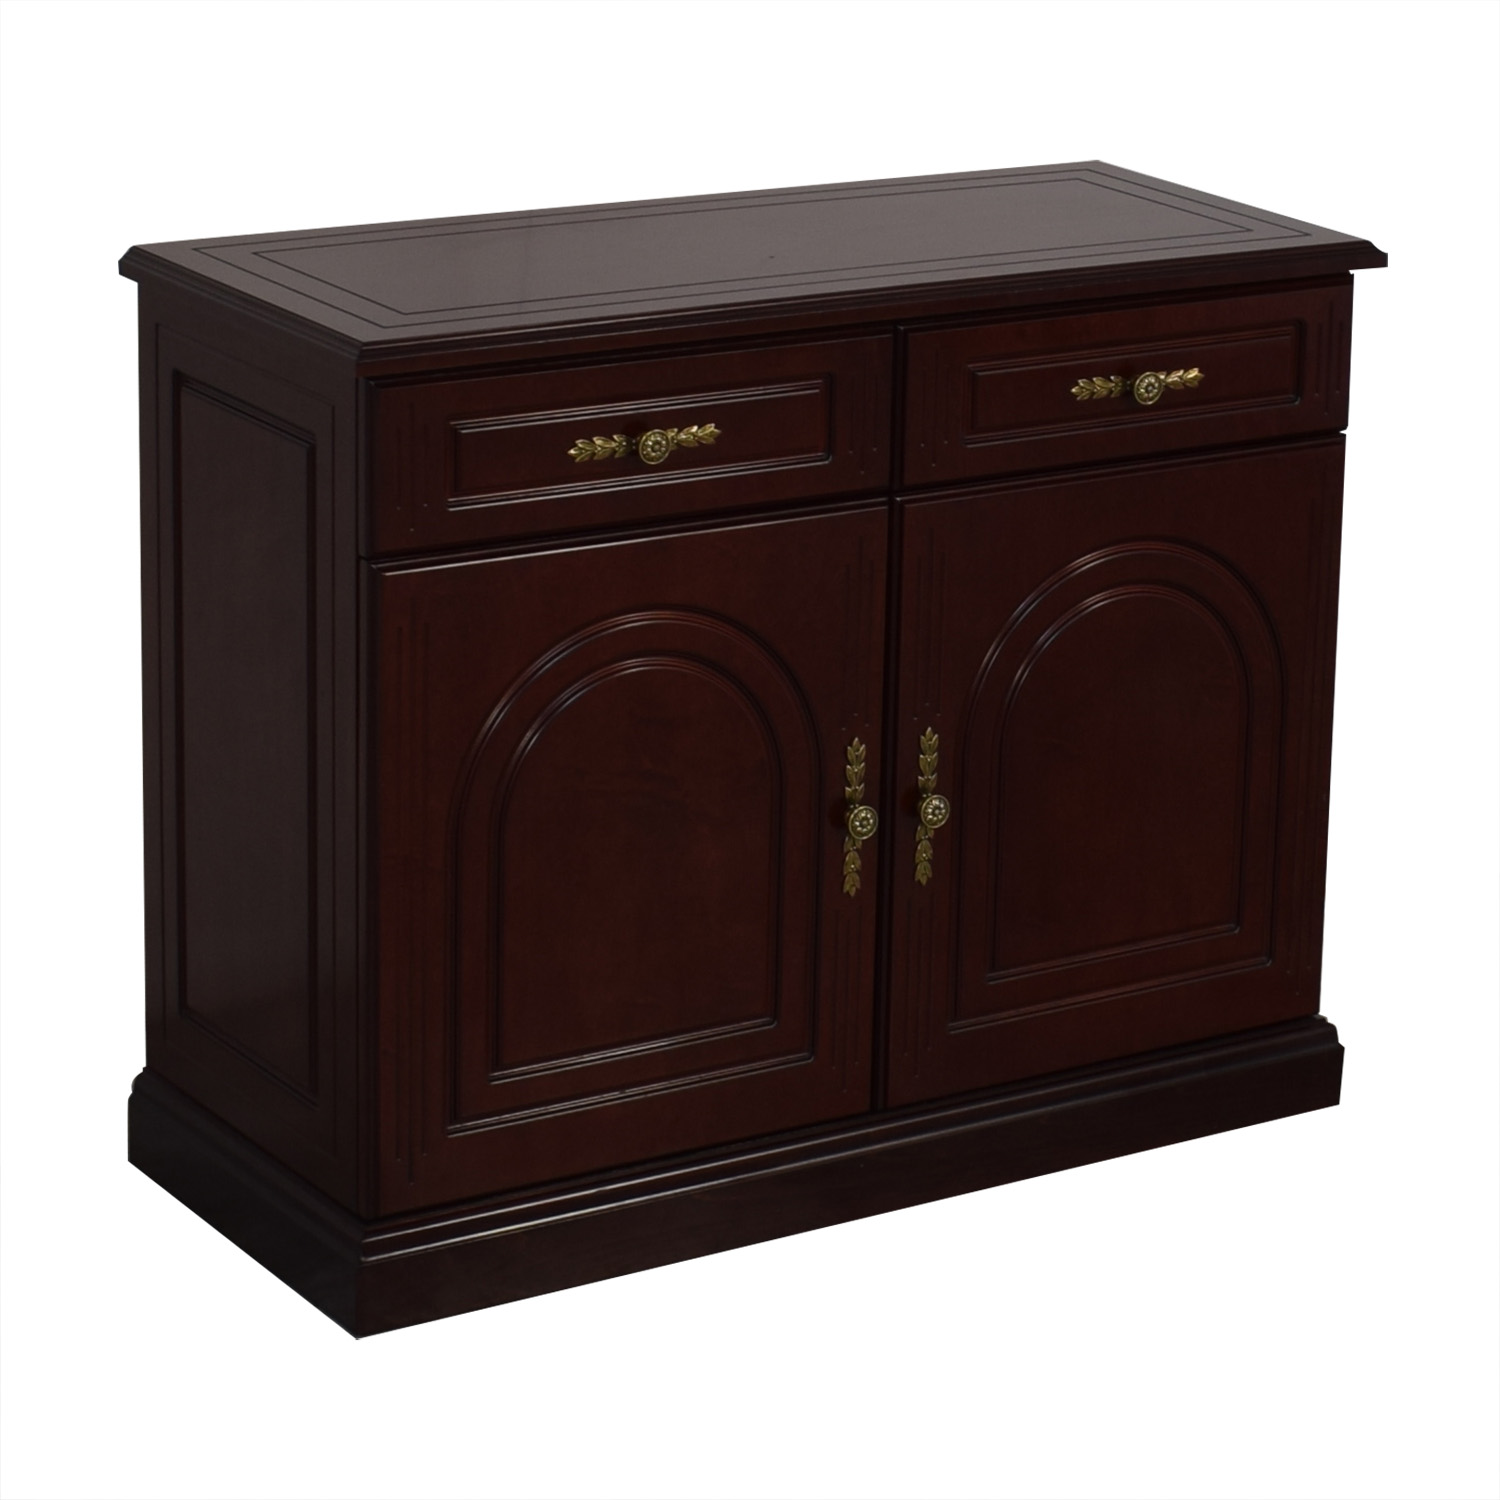 Dining Room Buffet / Cabinets & Sideboards